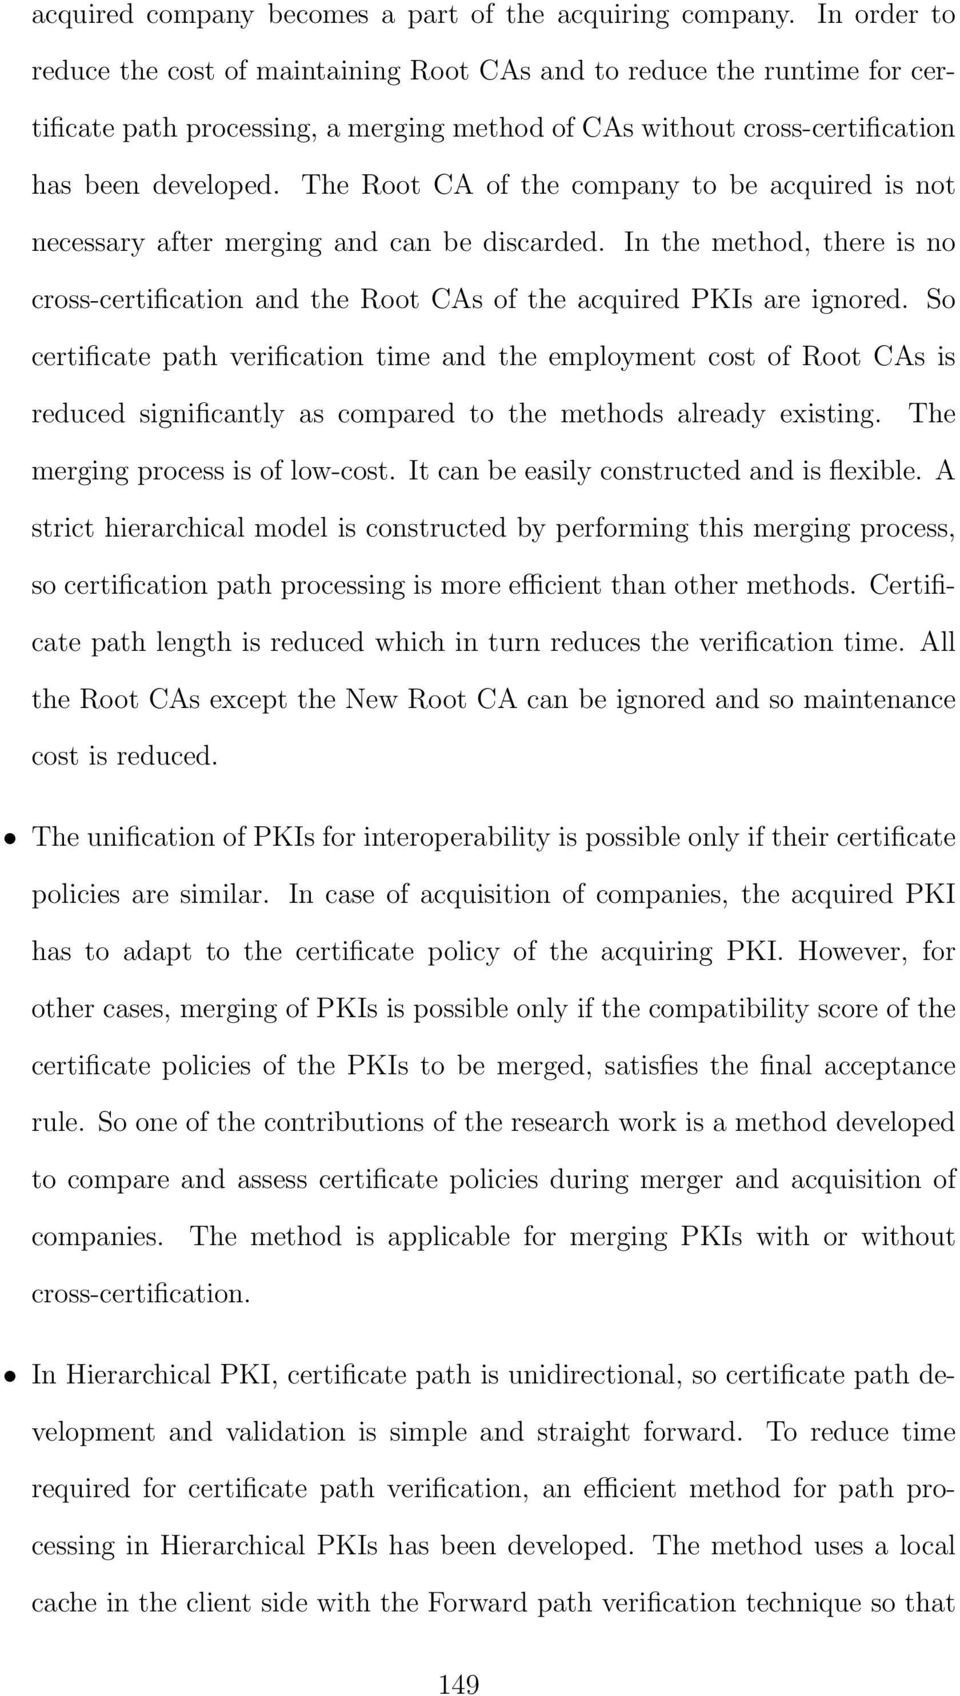 The Root CA of the company to be acquired is not necessary after merging and can be discarded. In the method, there is no cross-certification and the Root CAs of the acquired PKIs are ignored.